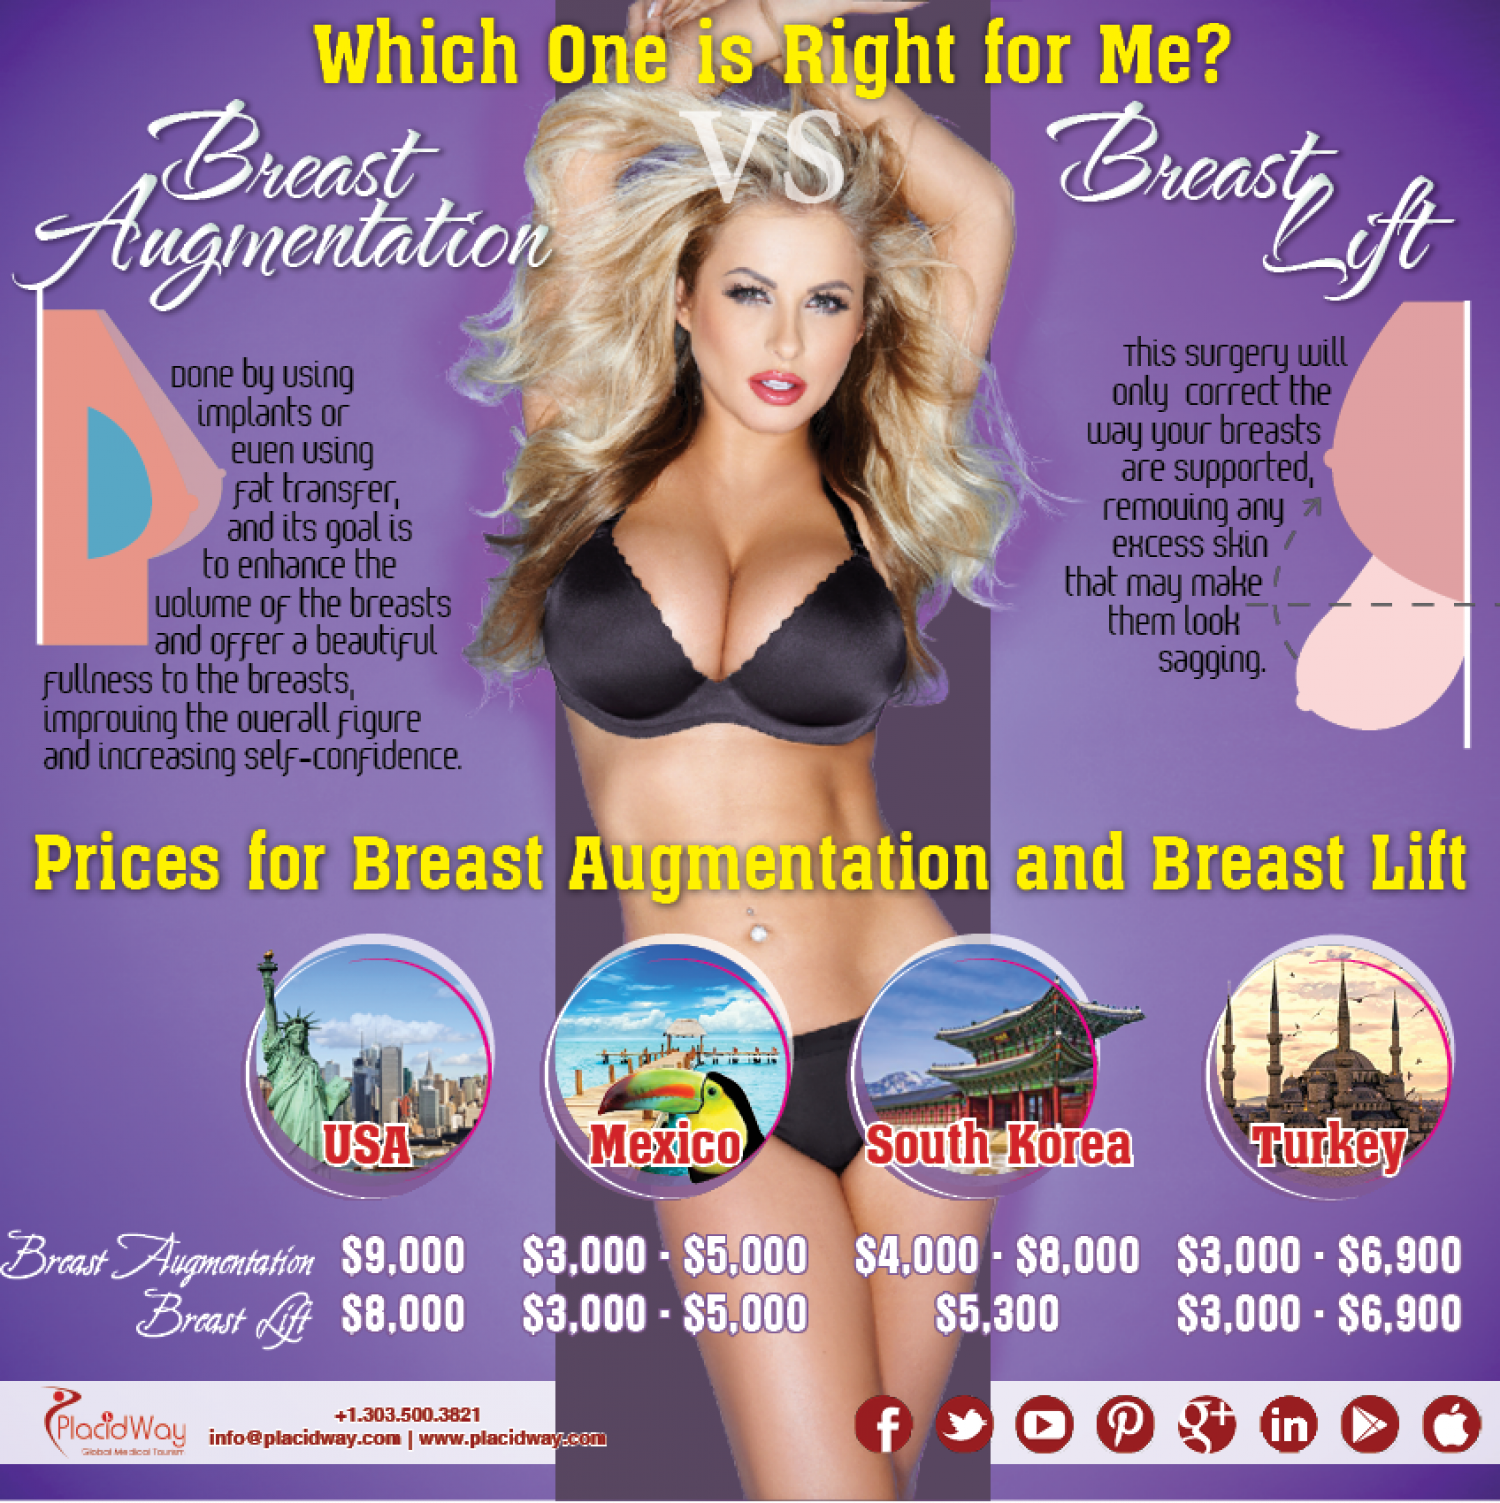 Breast Augmentation or Breast Lift? Infographic